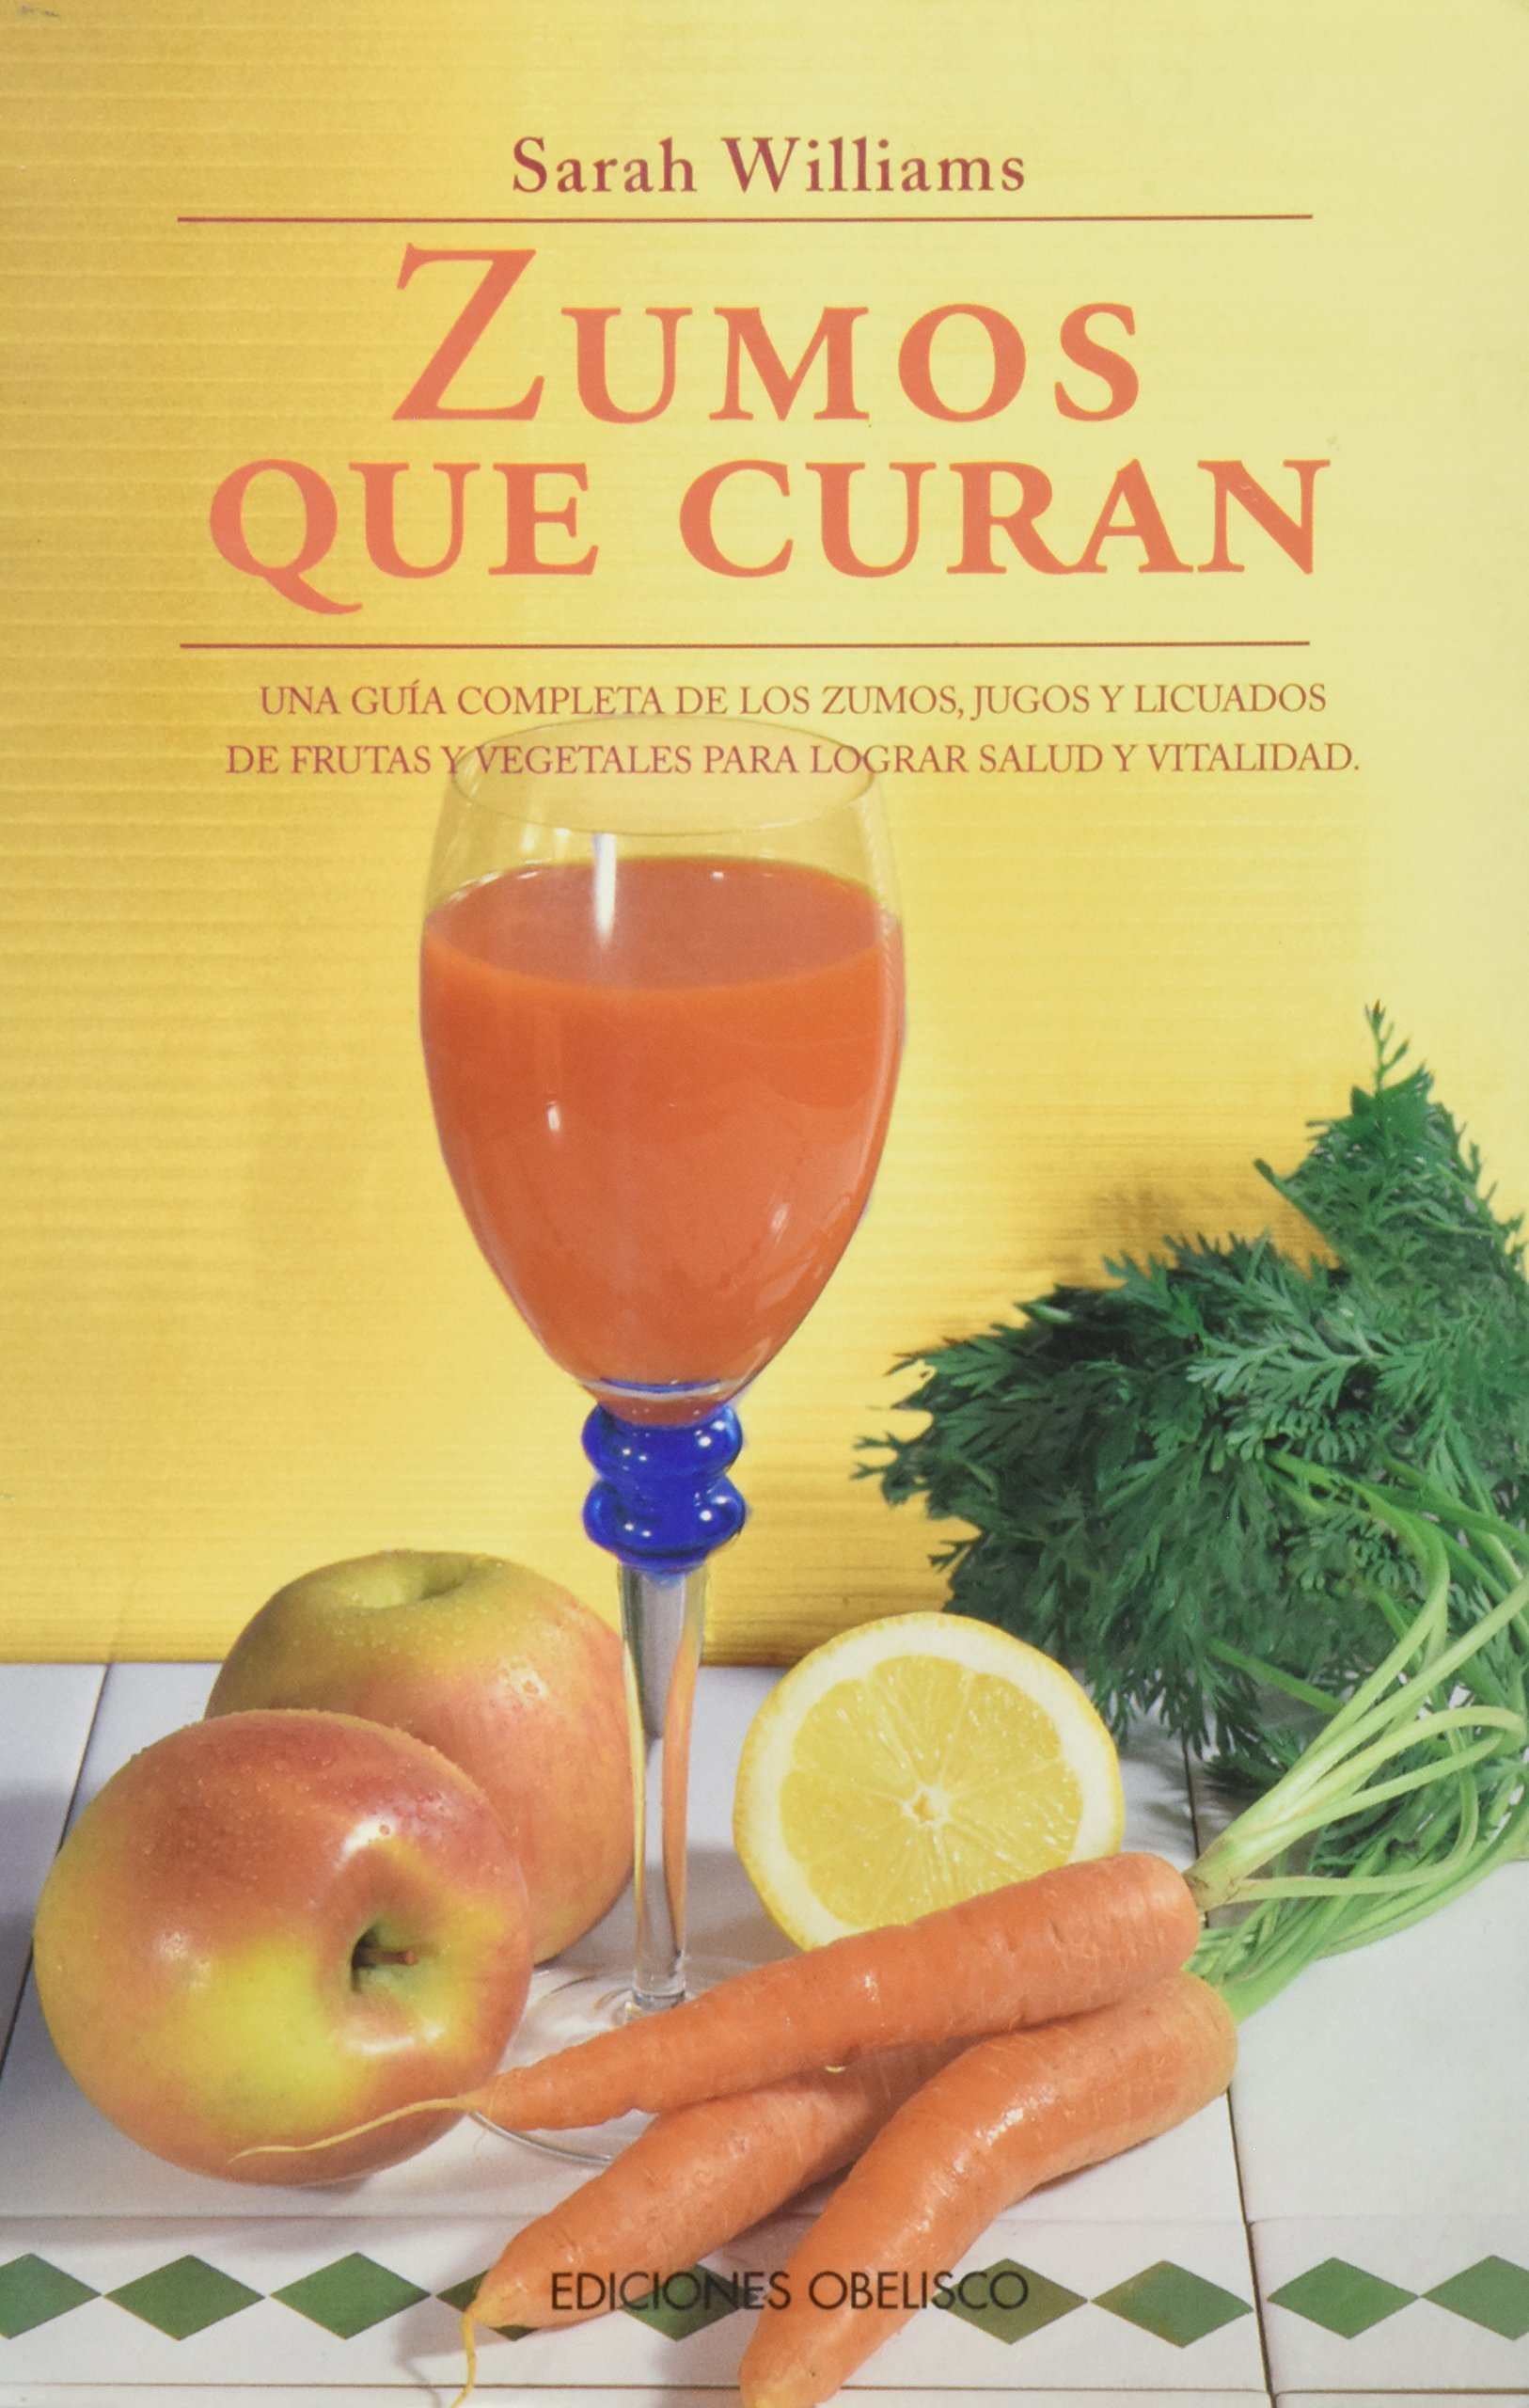 Zumos Que Curan / Curing Juices (Salud Y Vida Natural / Natural Health and Living) (Spanish Edition): Sarah Williams: 9788477204091: Amazon.com: Books